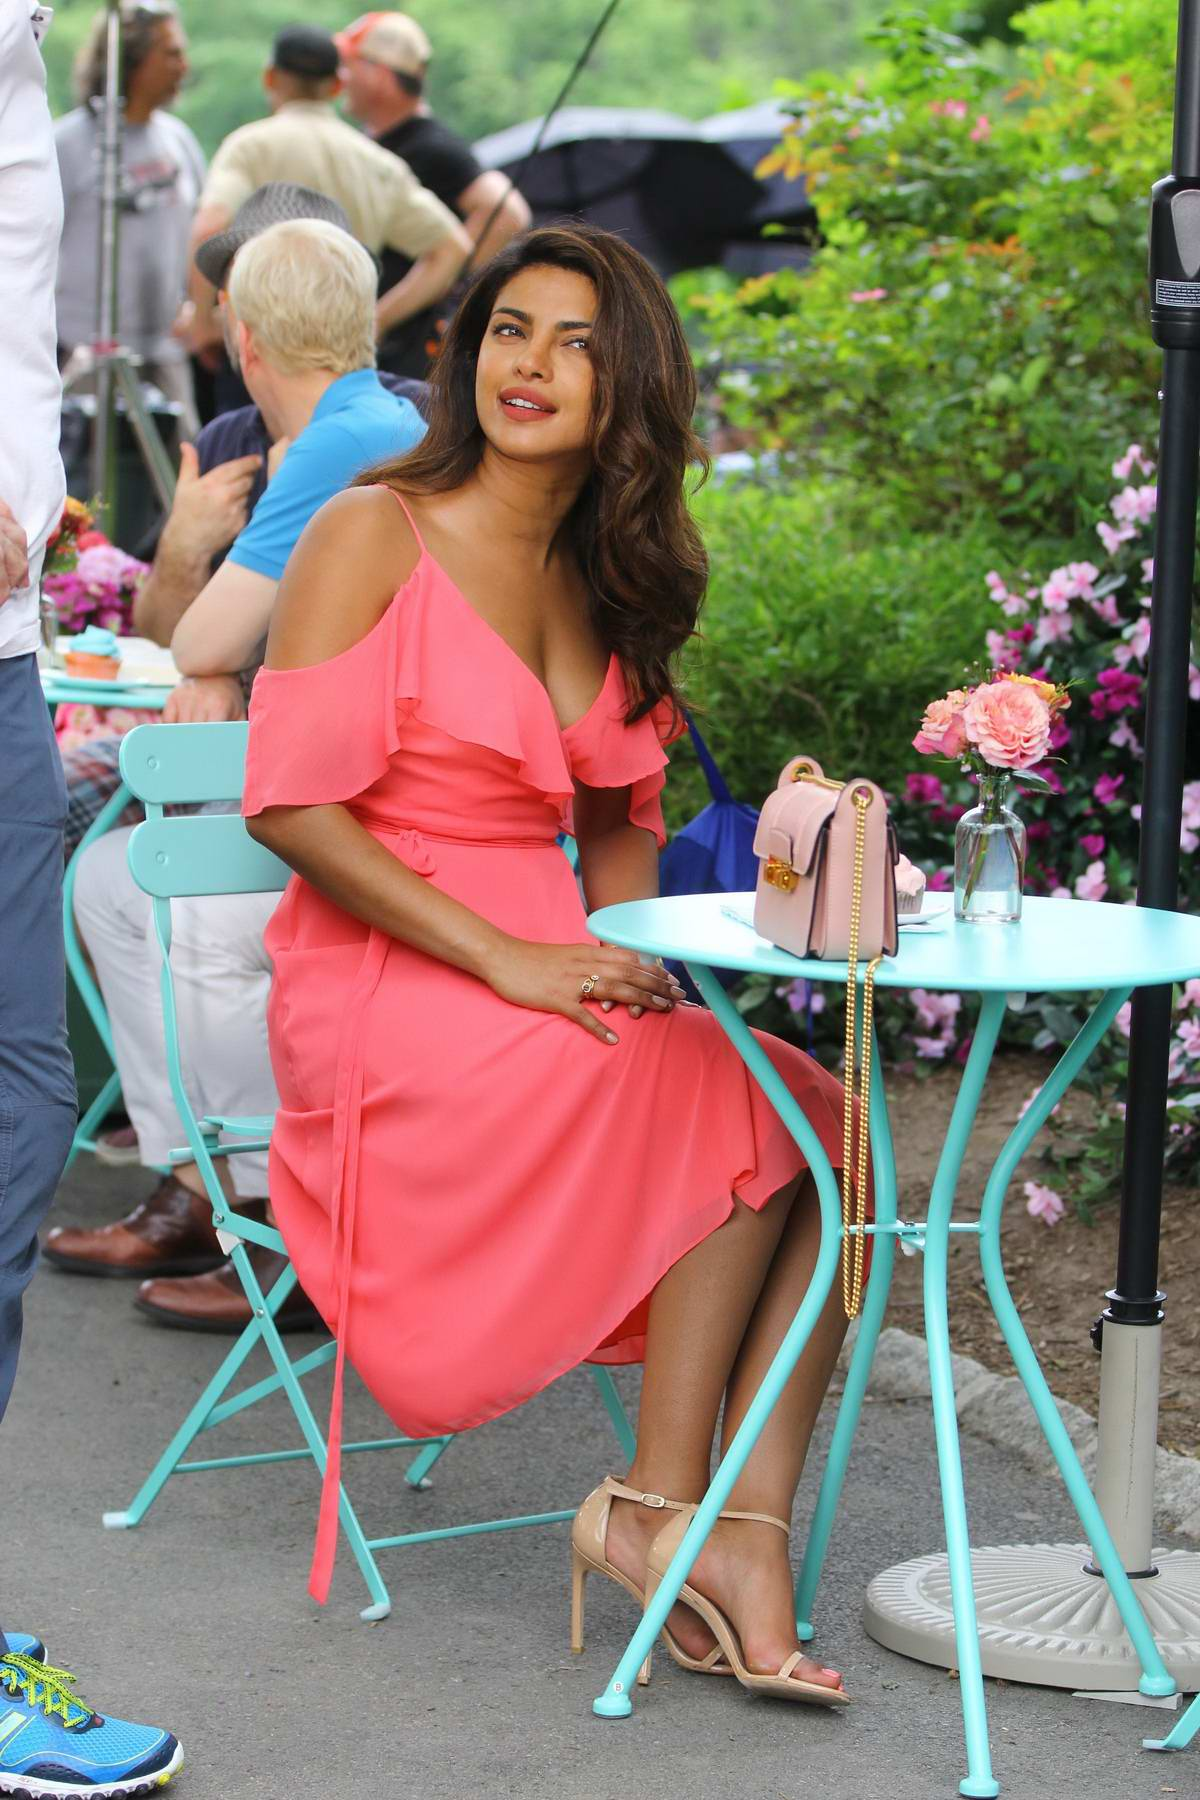 Priyanka Chopra filming scenes for the new movie Isnt It Romantic in Central Park, New York